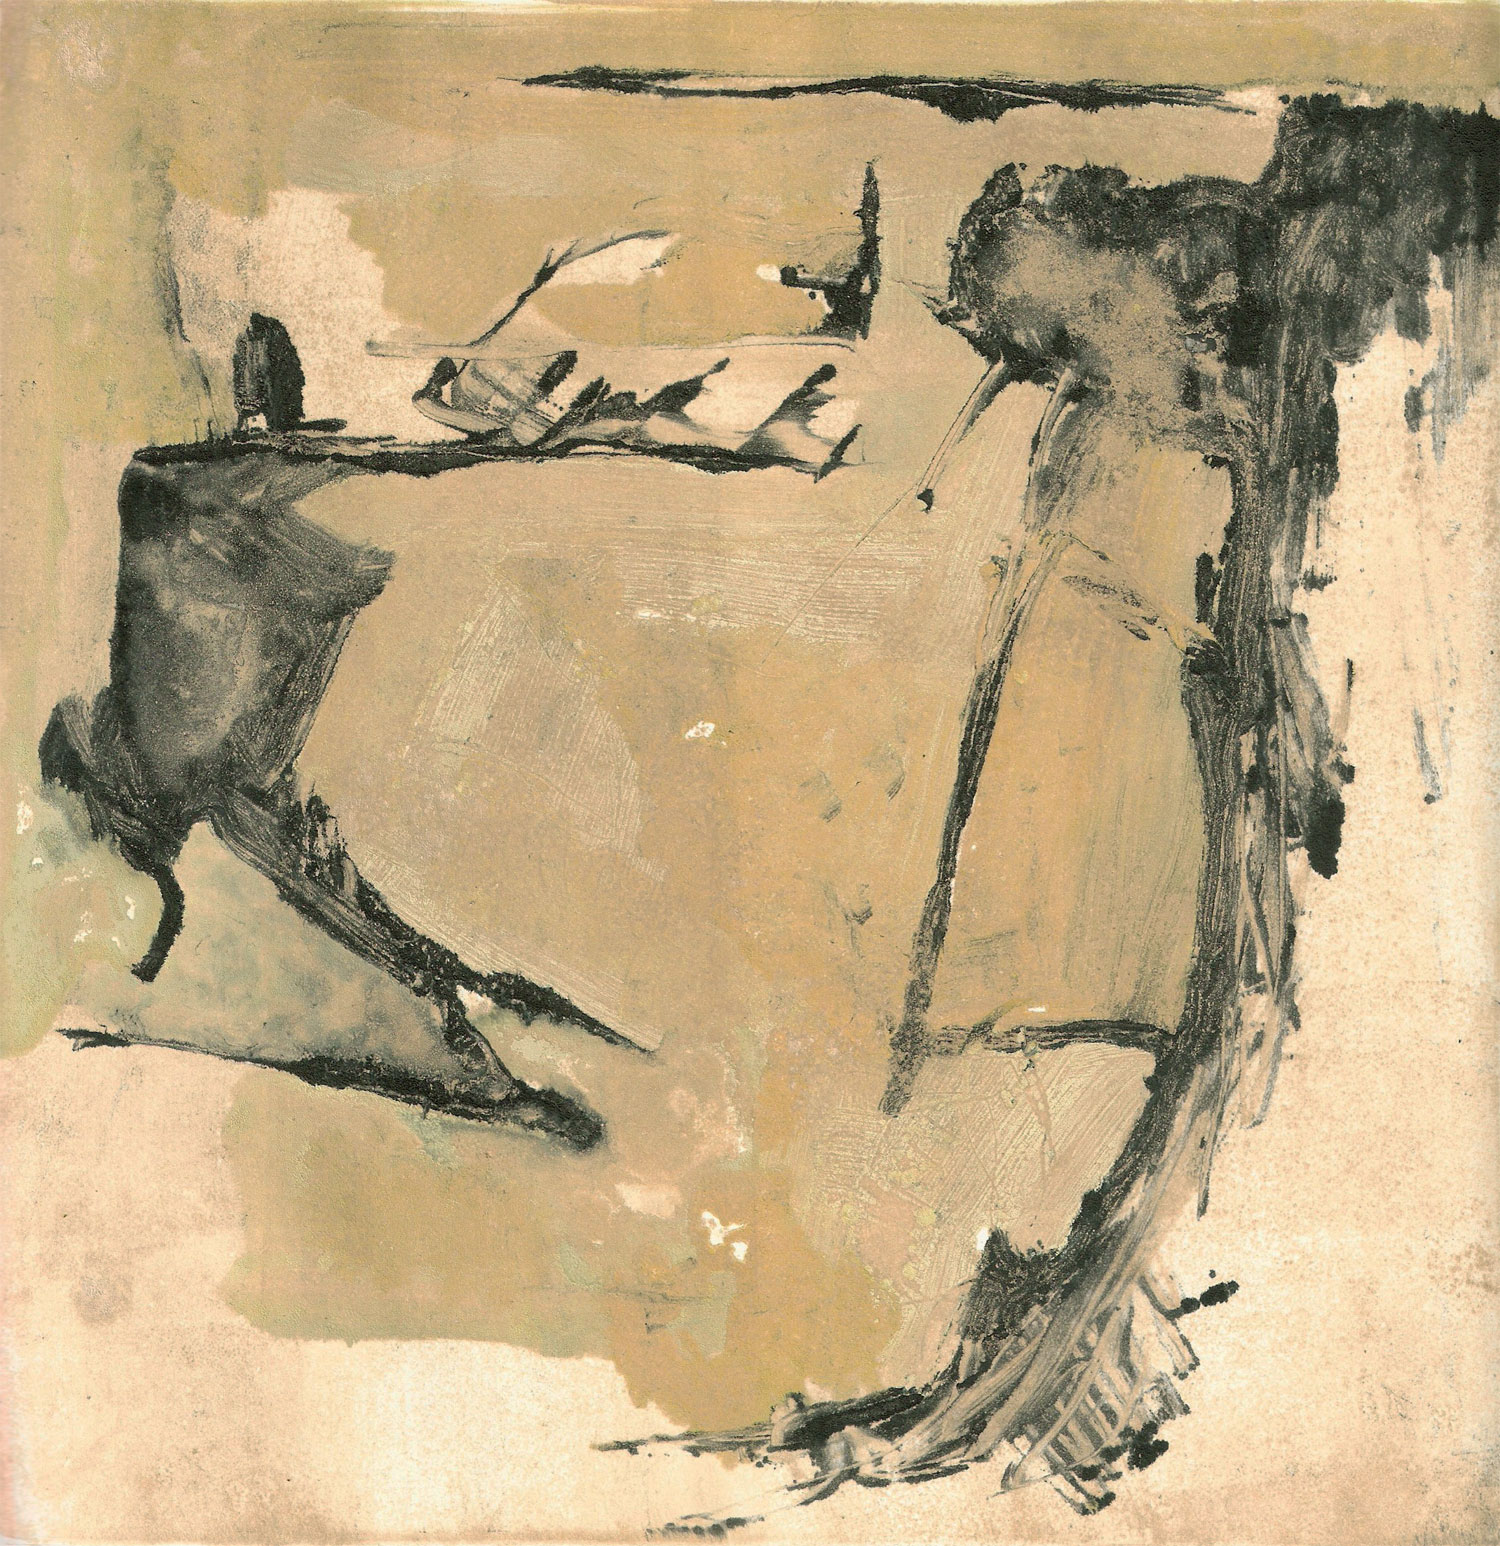 An Offering, monotype, 7x8, 2013